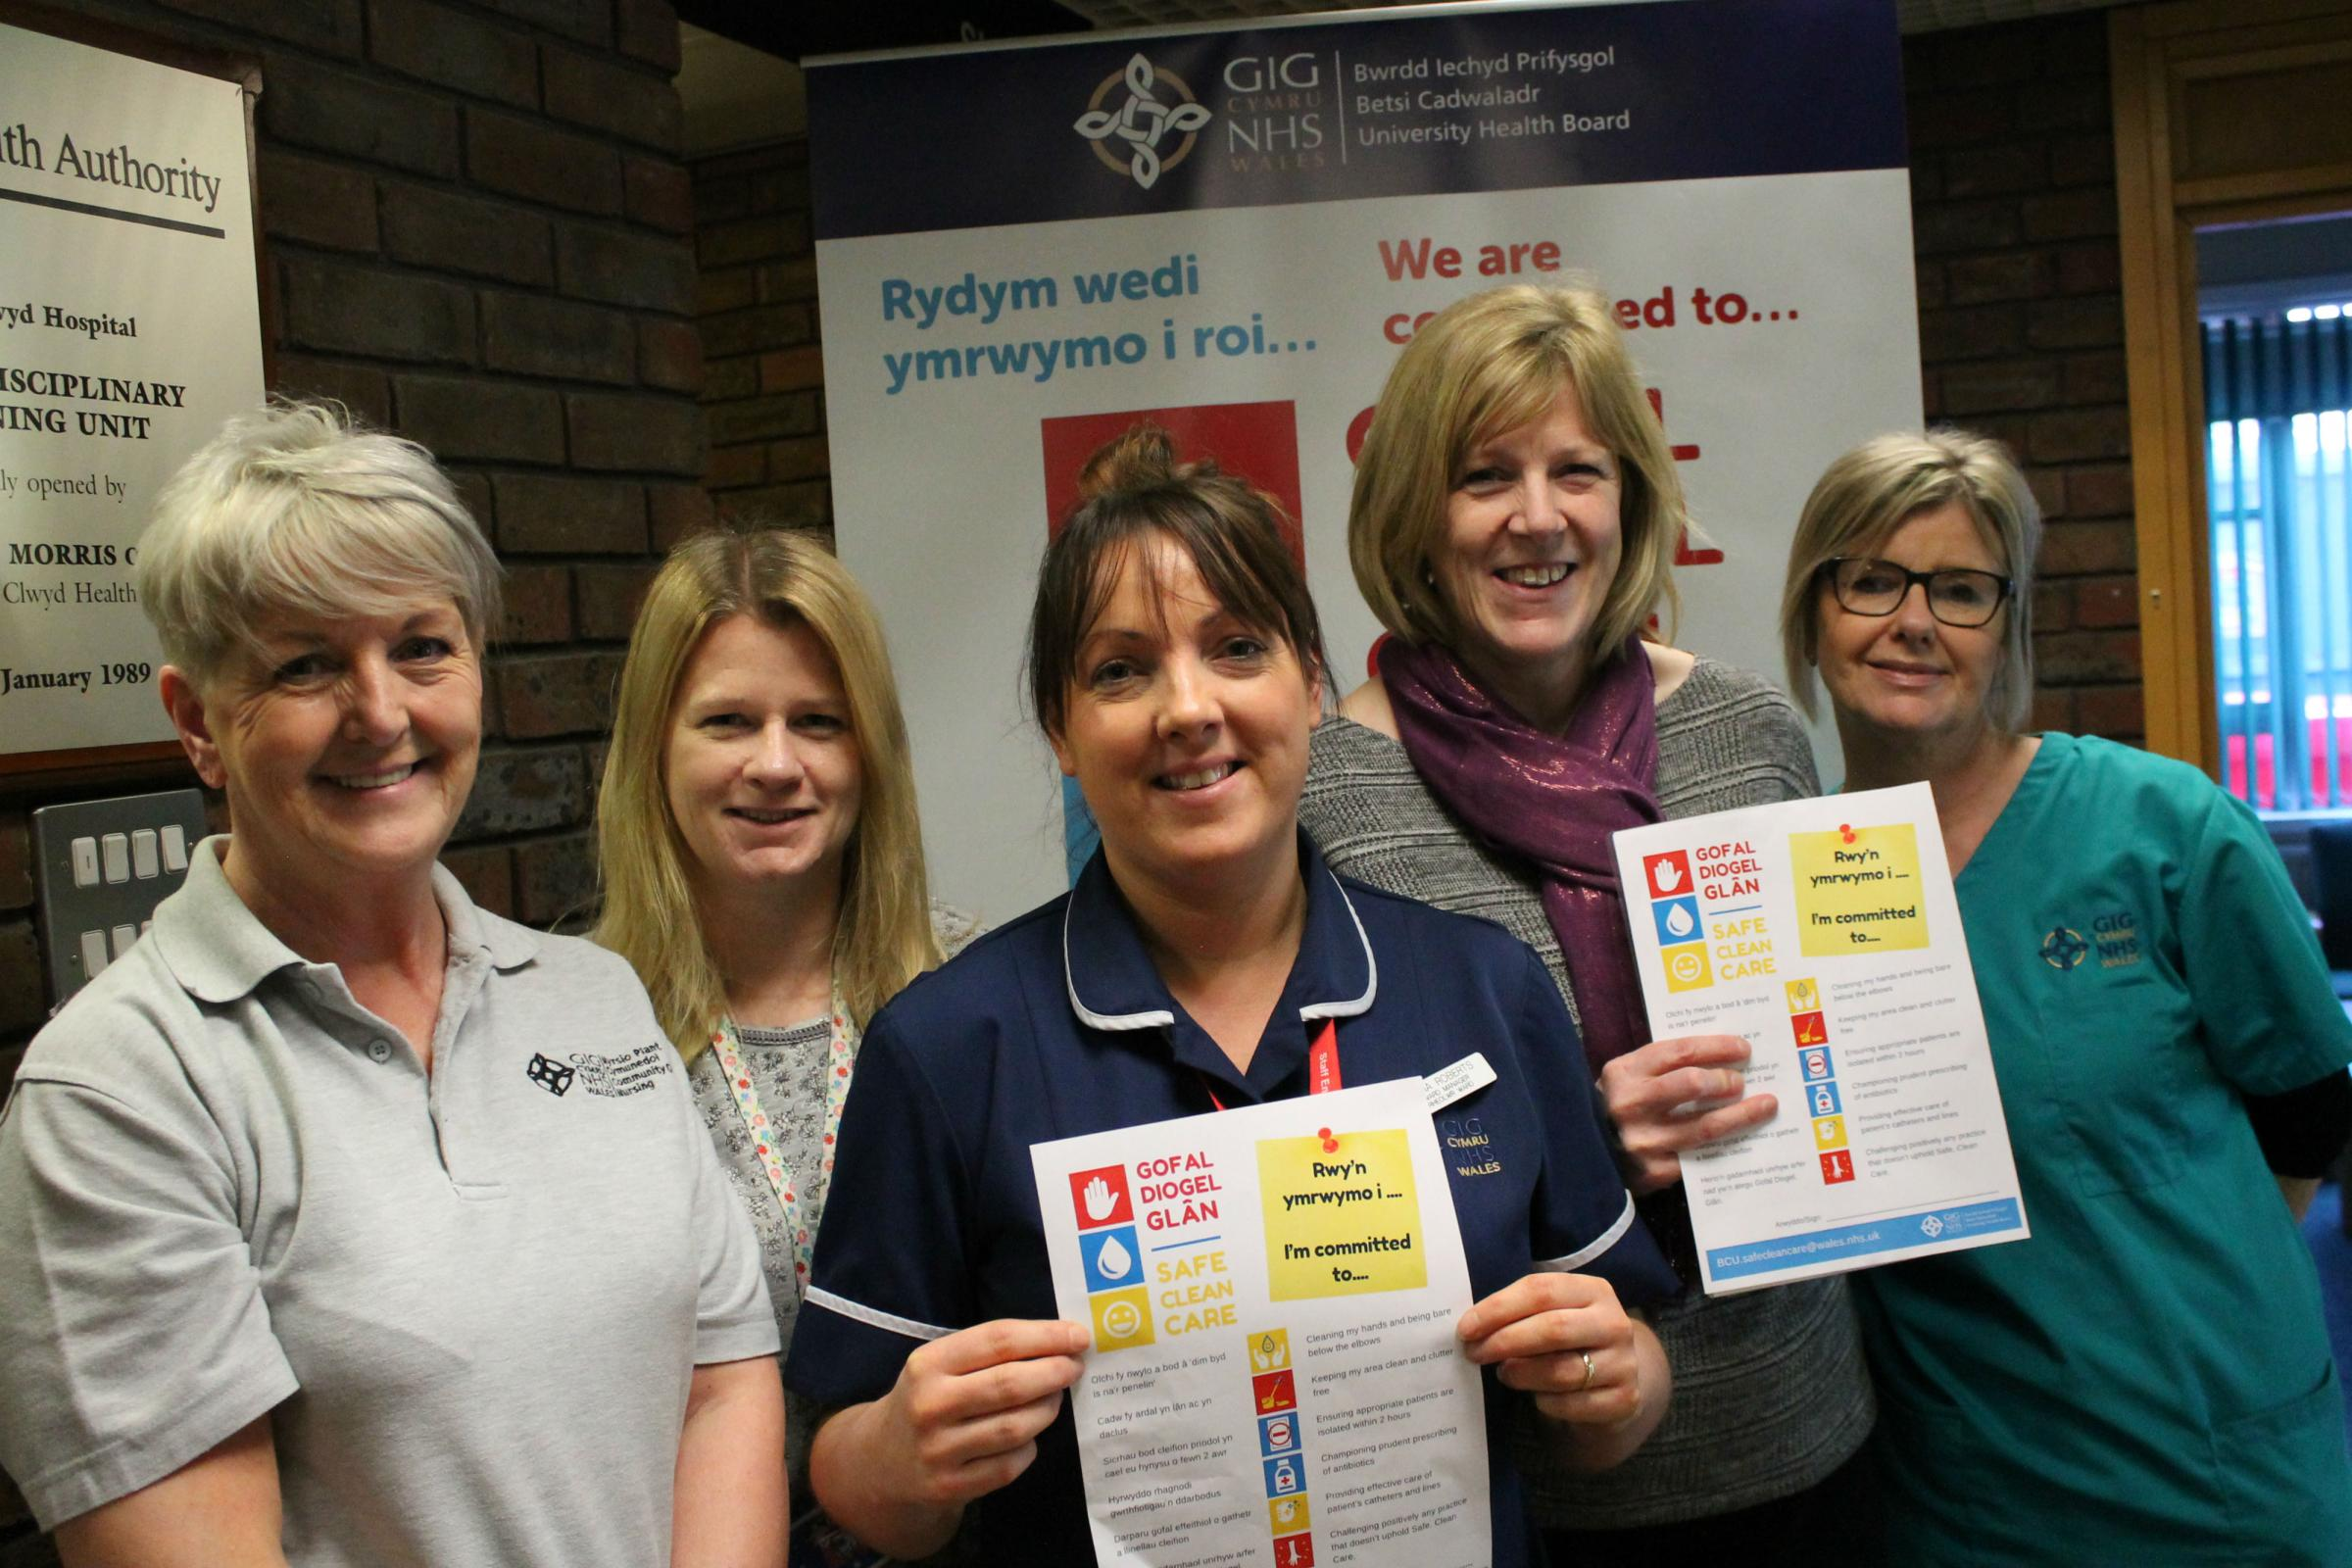 Glan Clwyd Hospital Children's ward staff Tracey Jones, Tracy MacDonald, Cara Roberts, Jane Thomas and Melanie Roberts